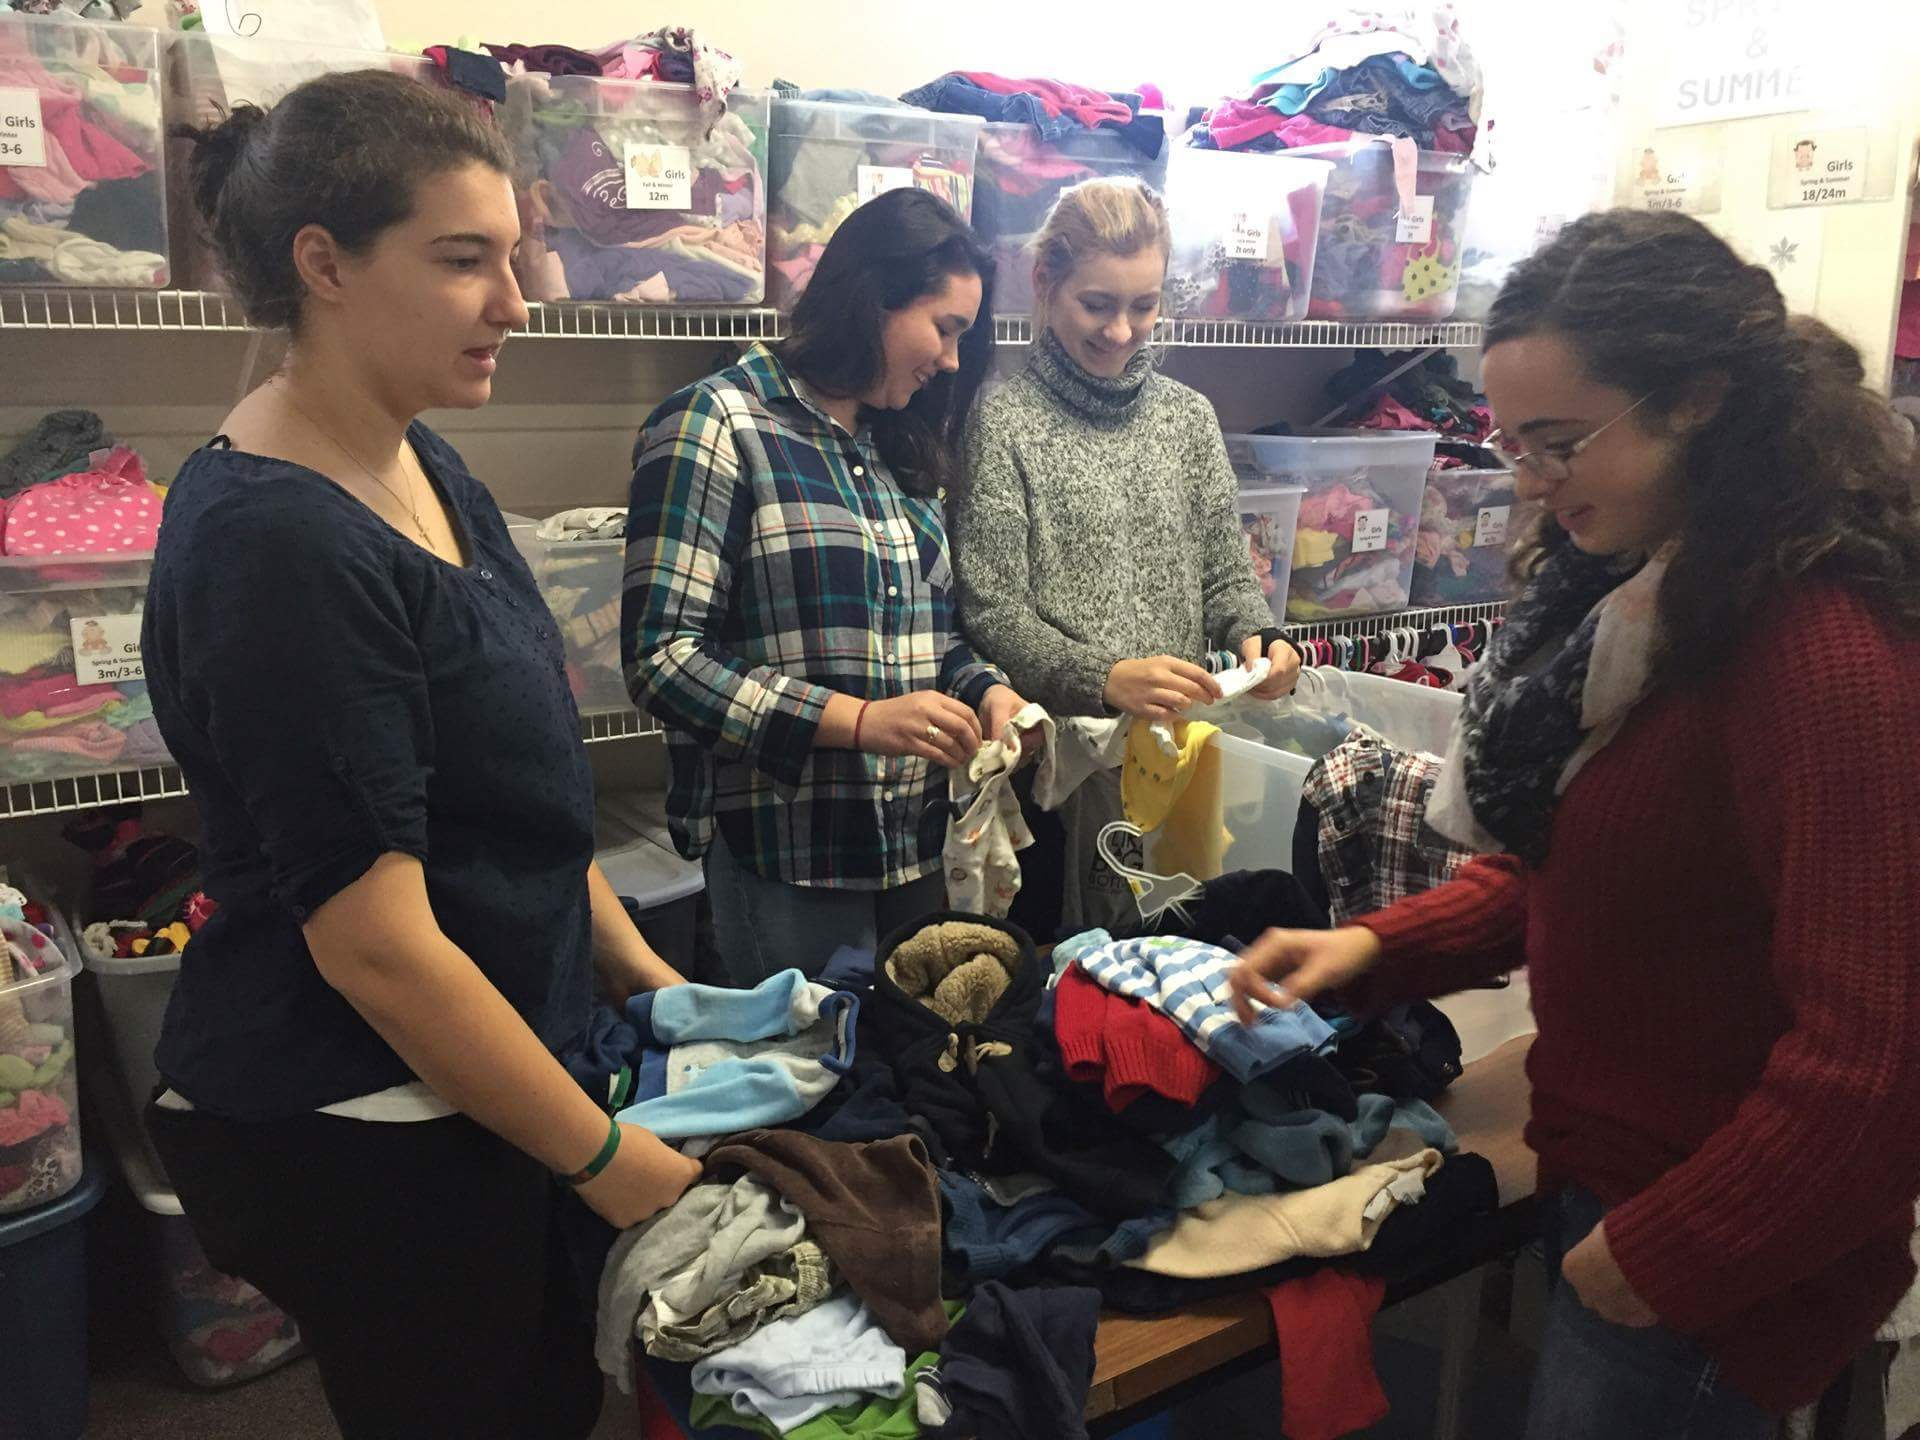 the girls are pictured here sorting and hanging baby clothes before they make it into the loving arms boutique.